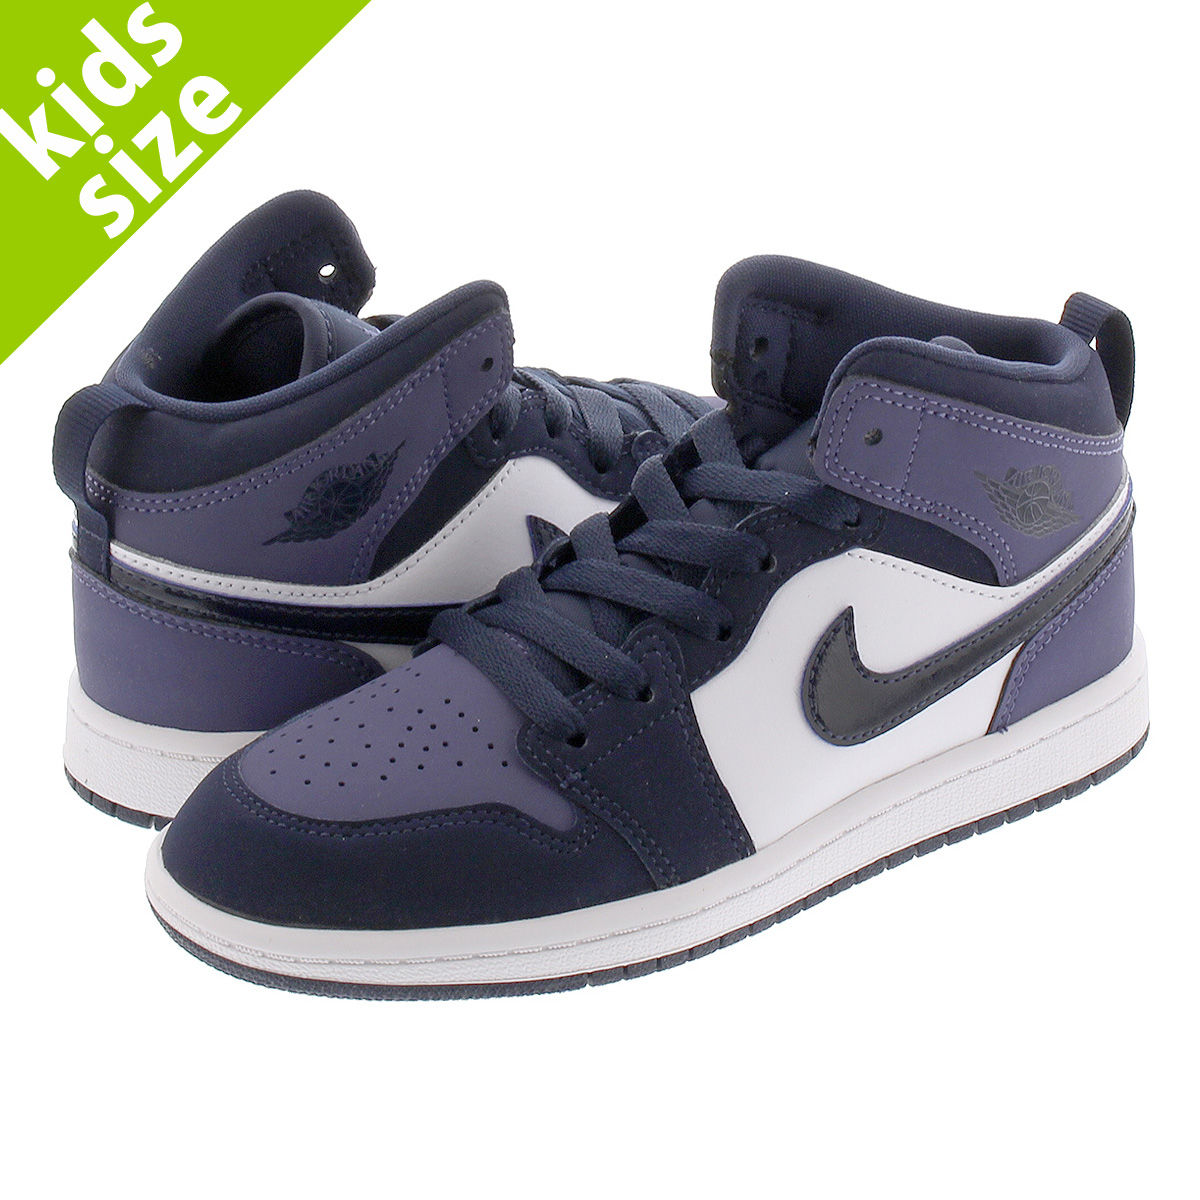 best value finest selection many fashionable NIKE AIR JORDAN 1 MID PS Nike Air Jordan 1 mid PS OBSIDIAN/SANDED PURPLE  640,734-445